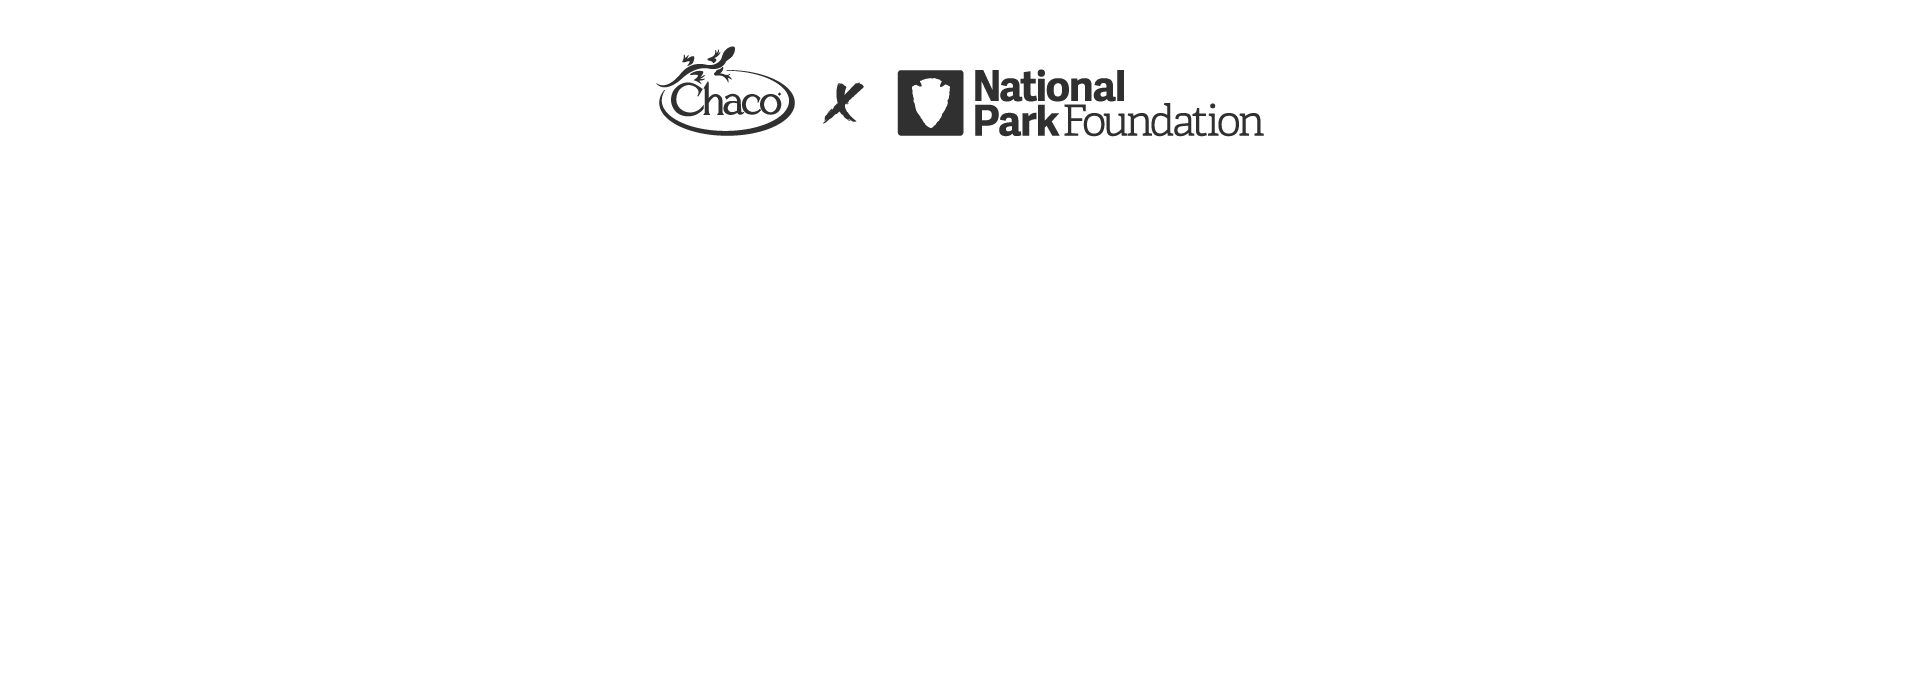 Chacos and the National Parks Foundation